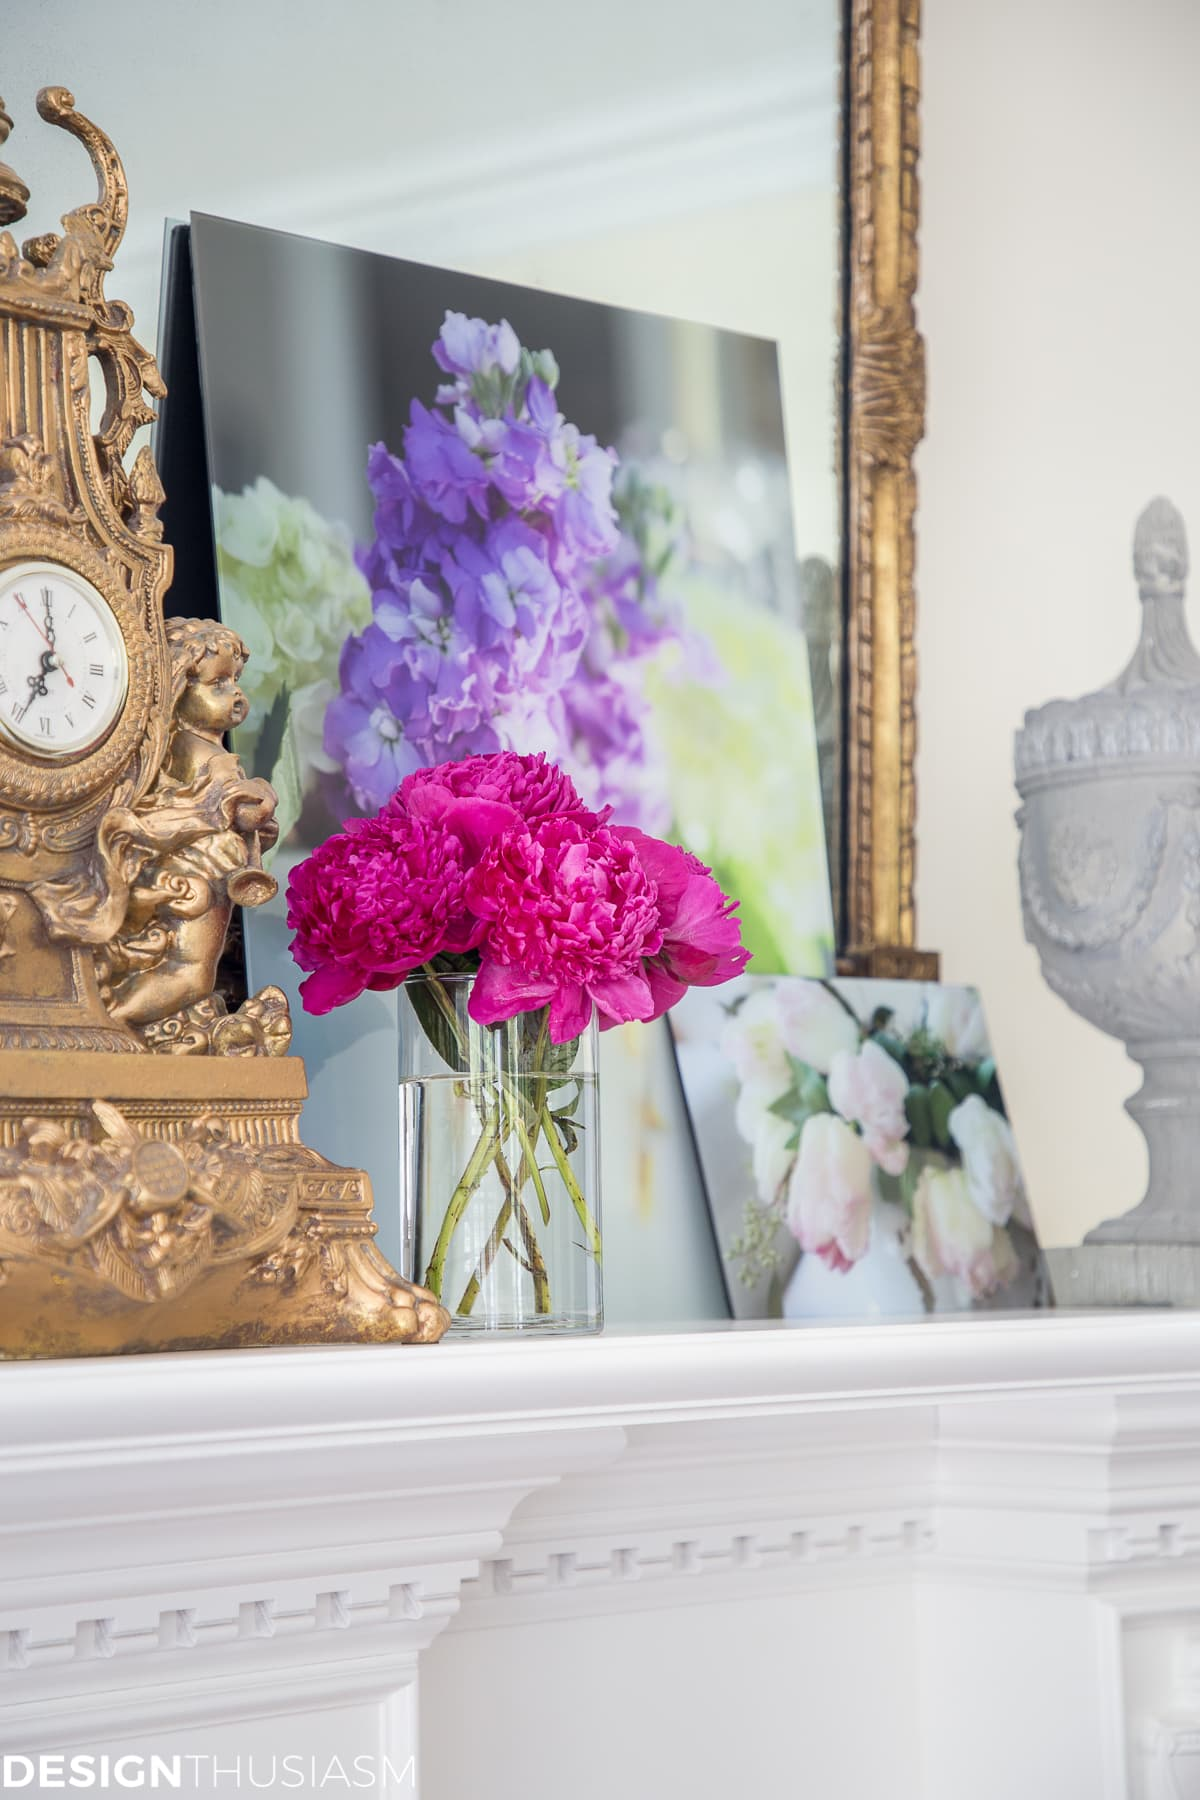 How to decorate a mantel with floral decor - designthusiasm.com